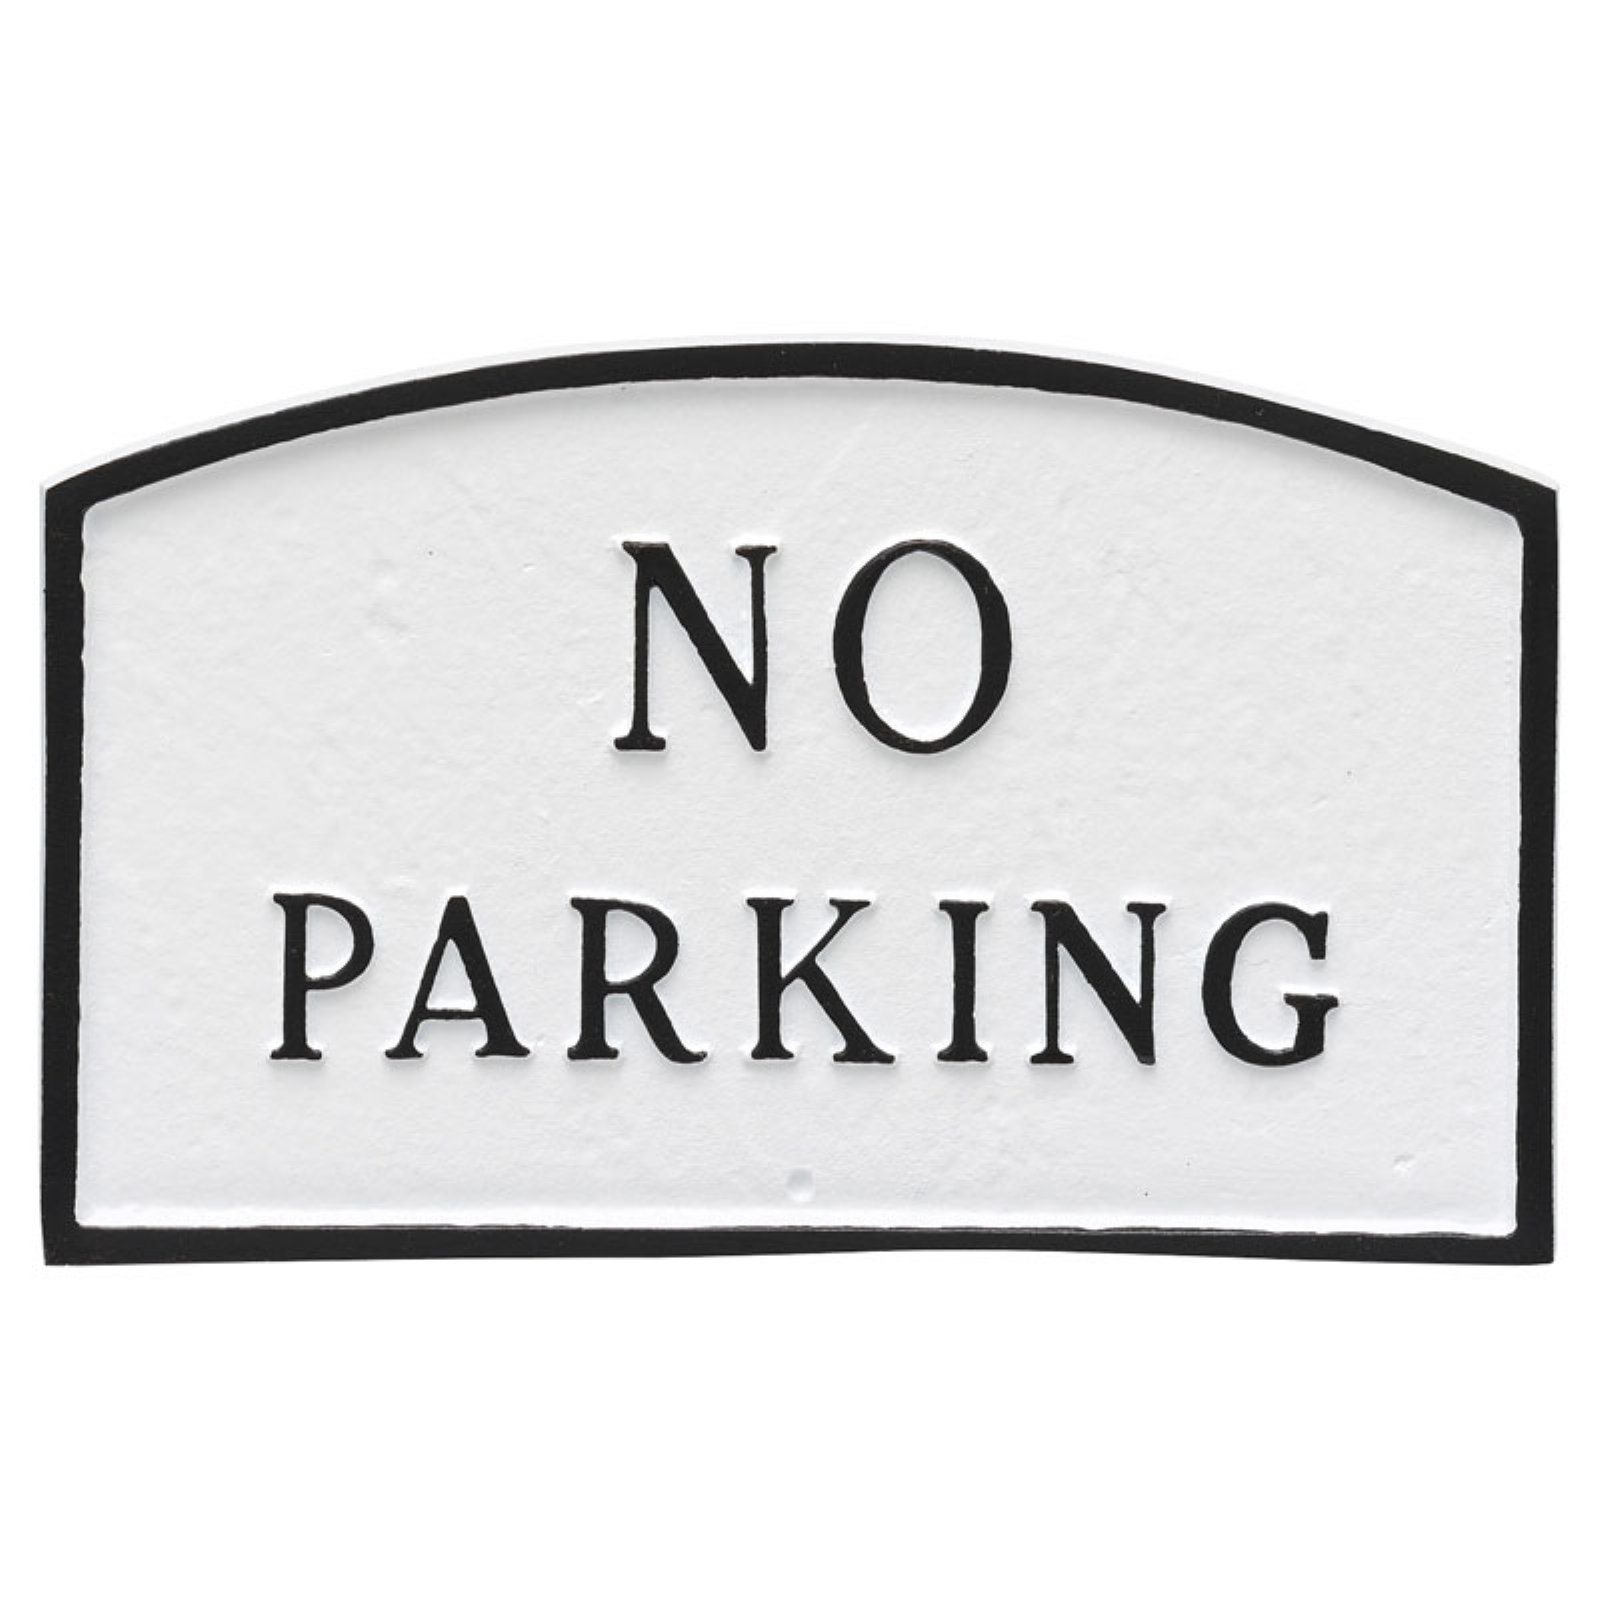 Montague Metal Products No Parking Arched Wall Plaque